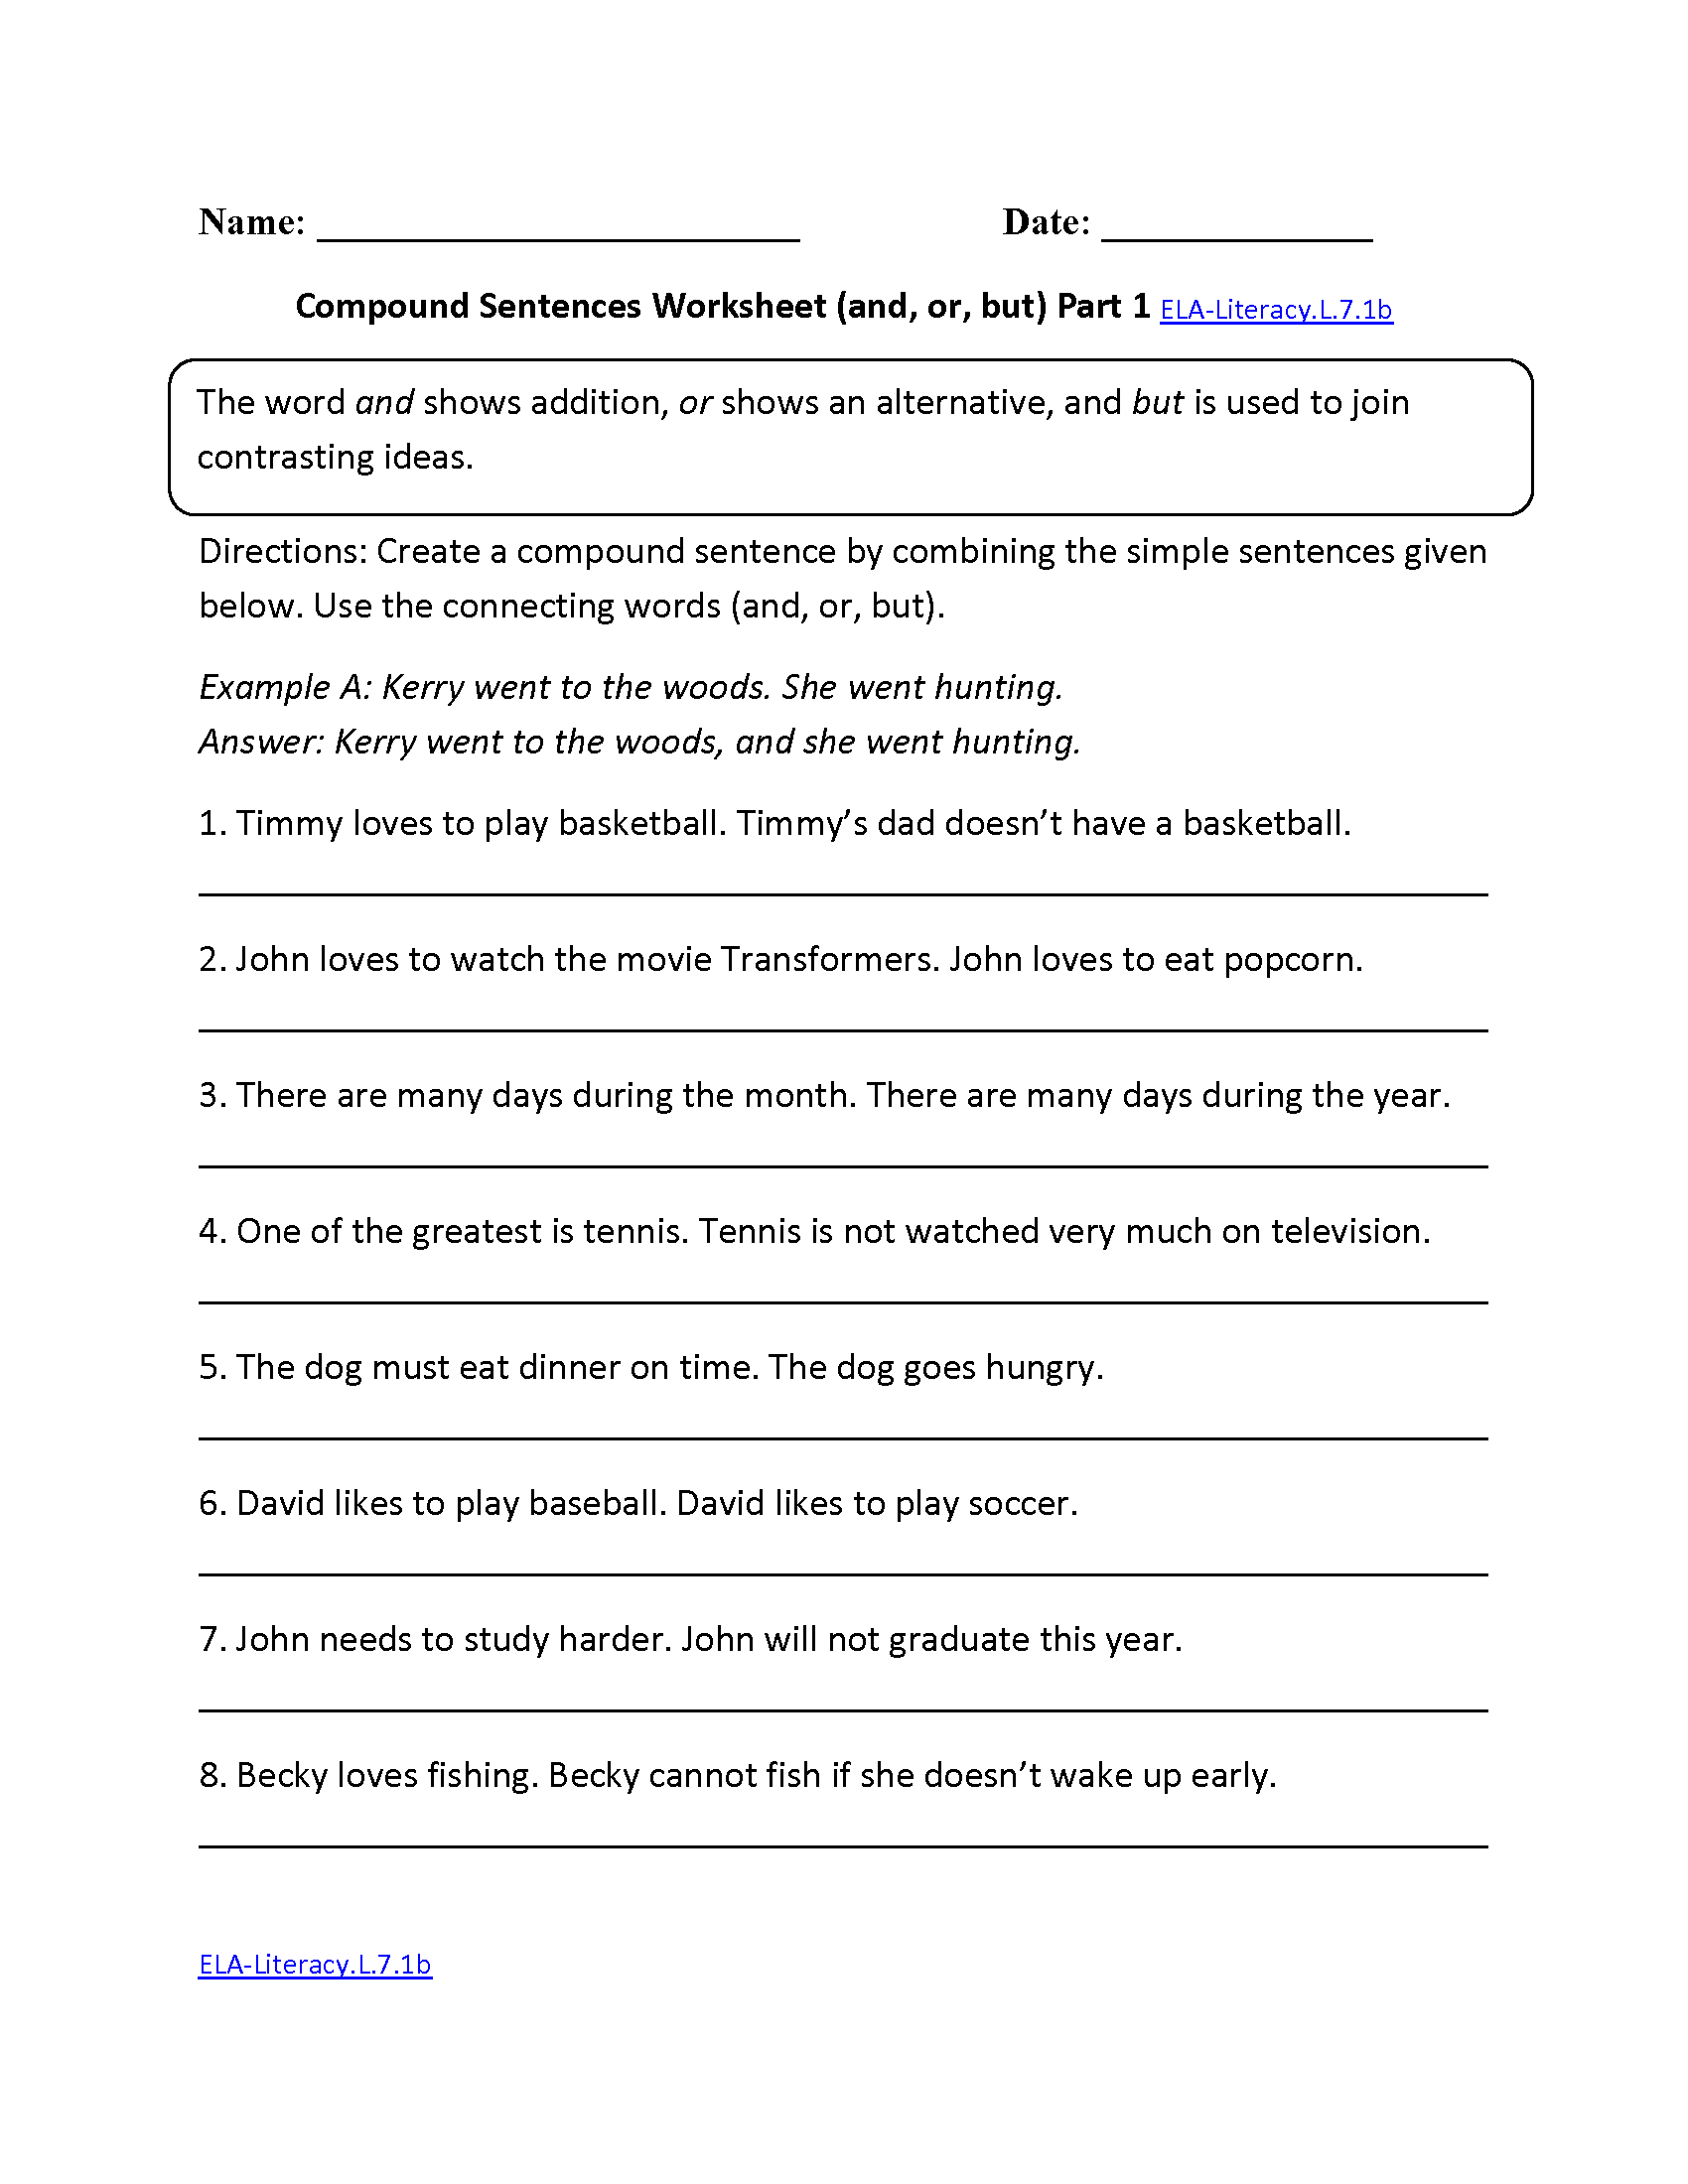 Worksheets Seventh Grade Worksheets 7th grade common core language worksheets compound sentences worksheet ela literacy l 7 1b worksheet